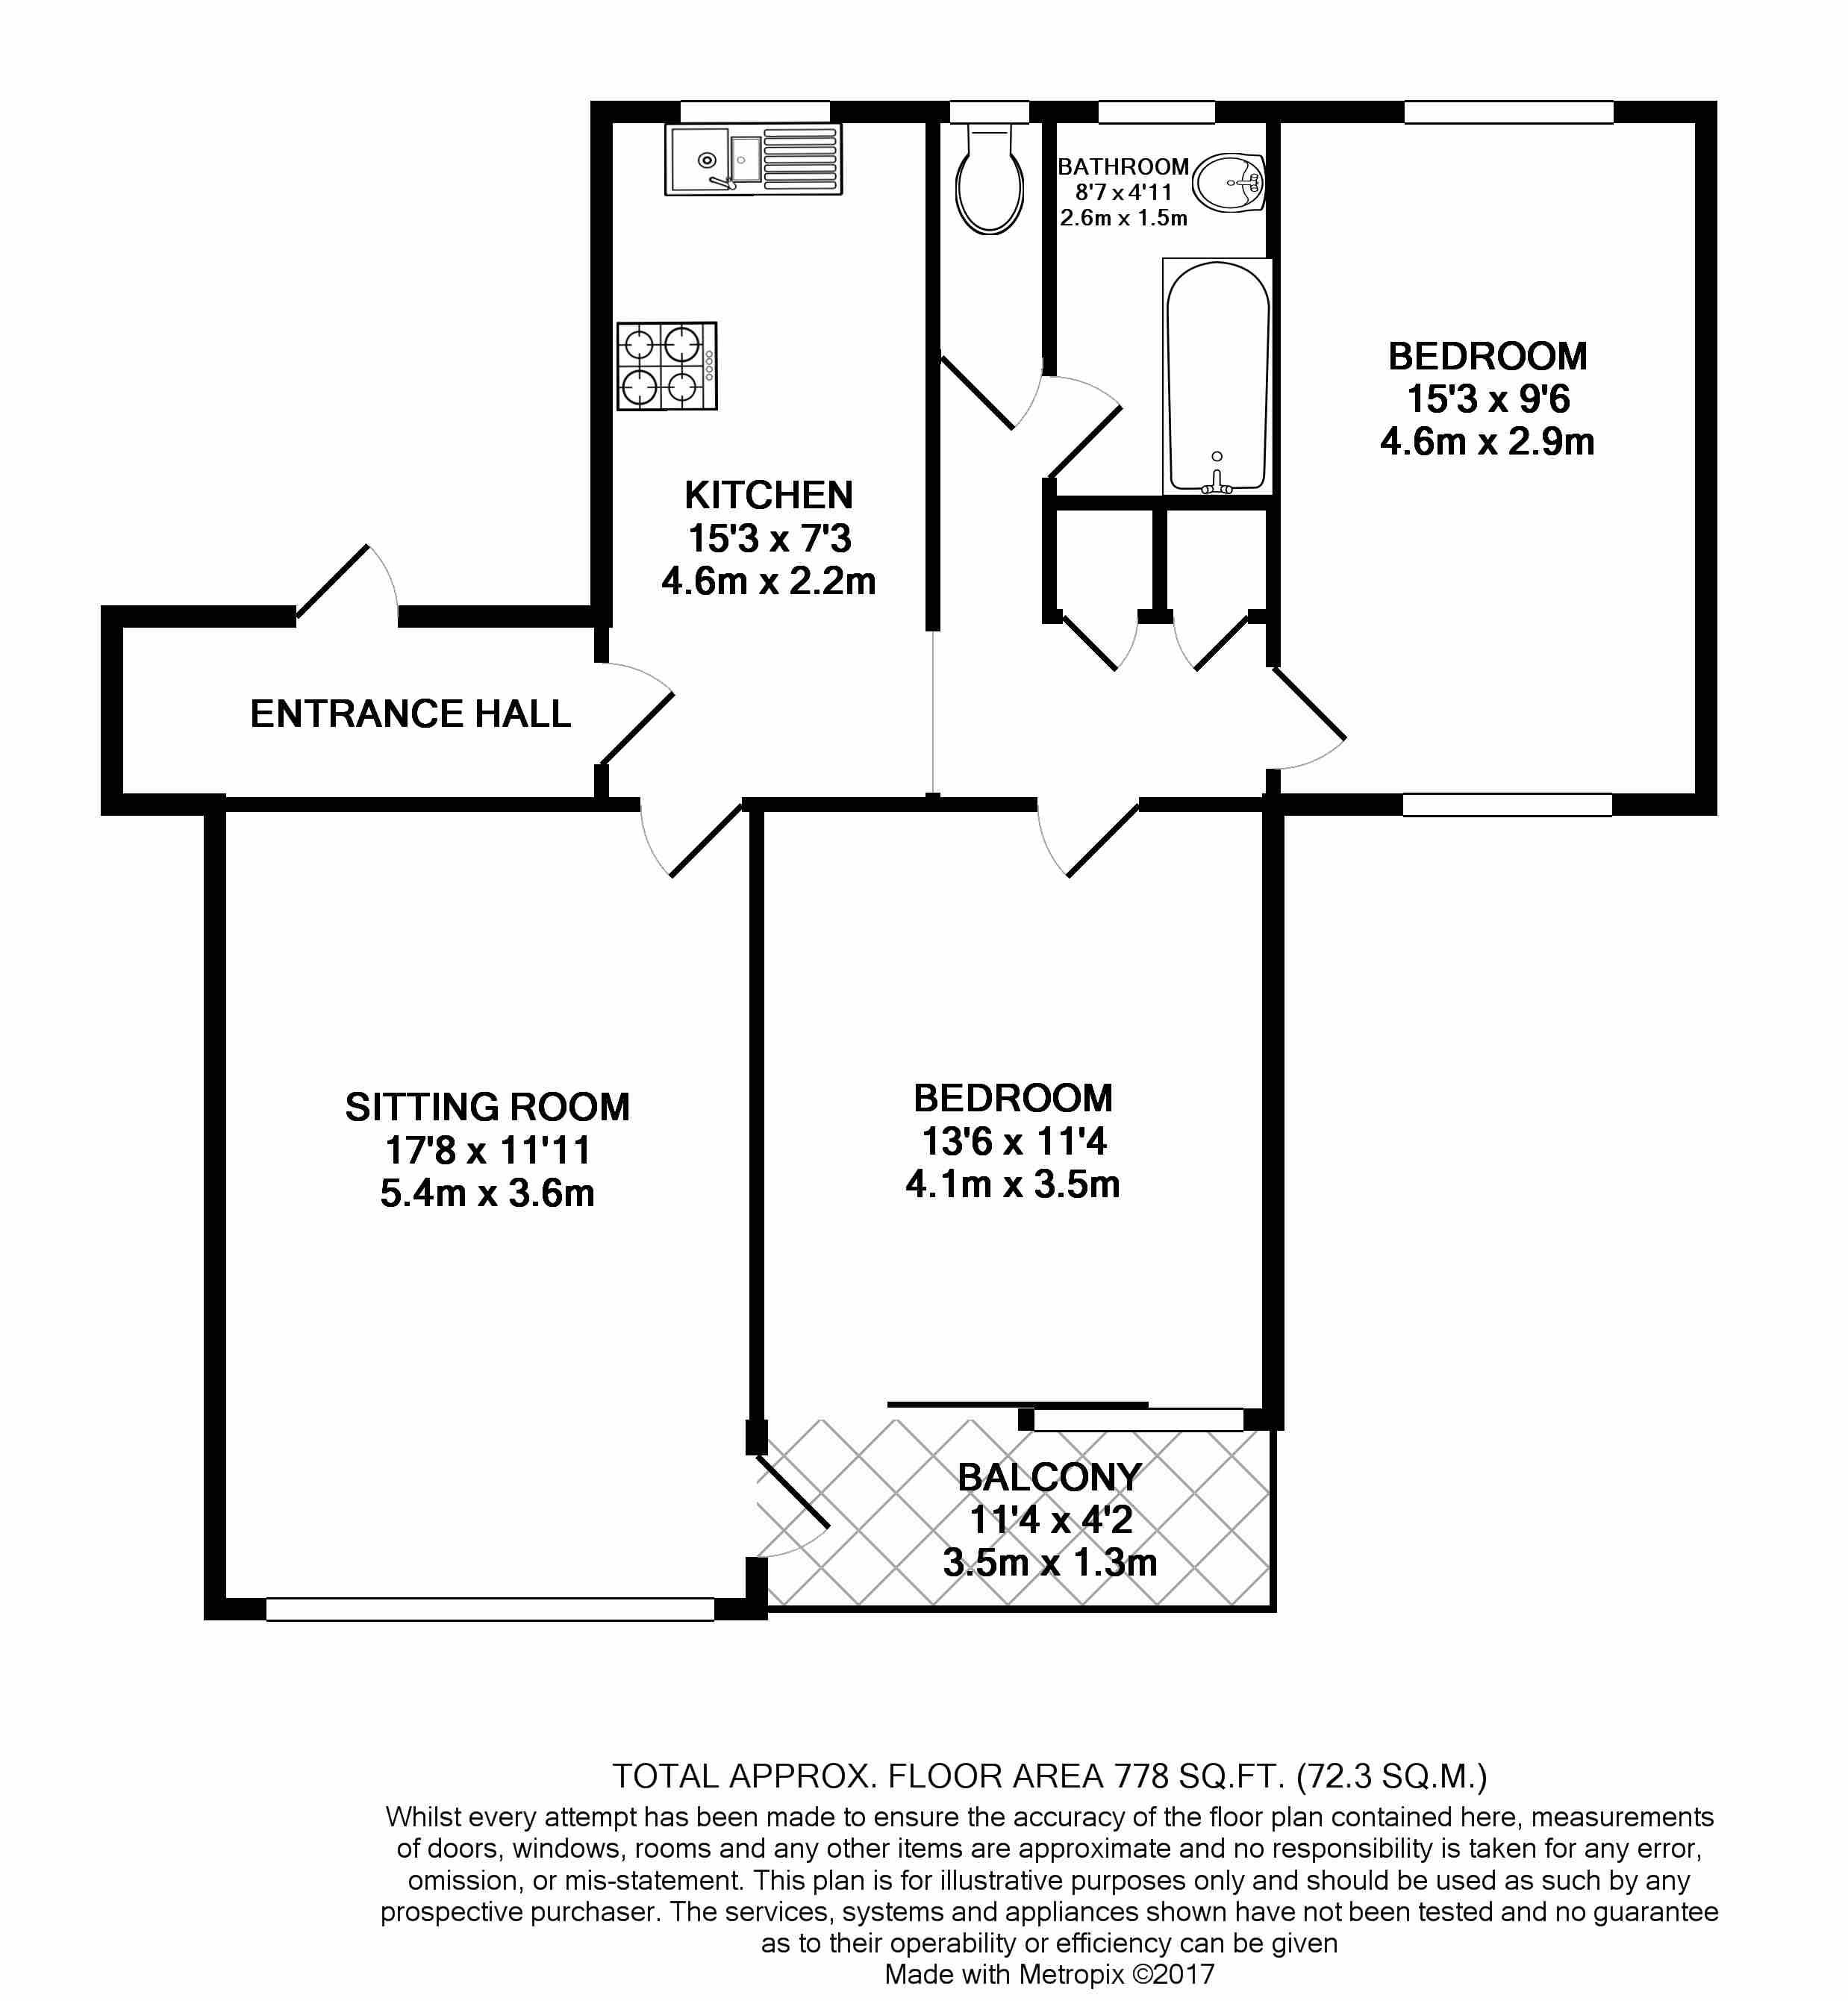 Marina court the marina deal ct14 2 bedroom flat for for 125 court street floor plans